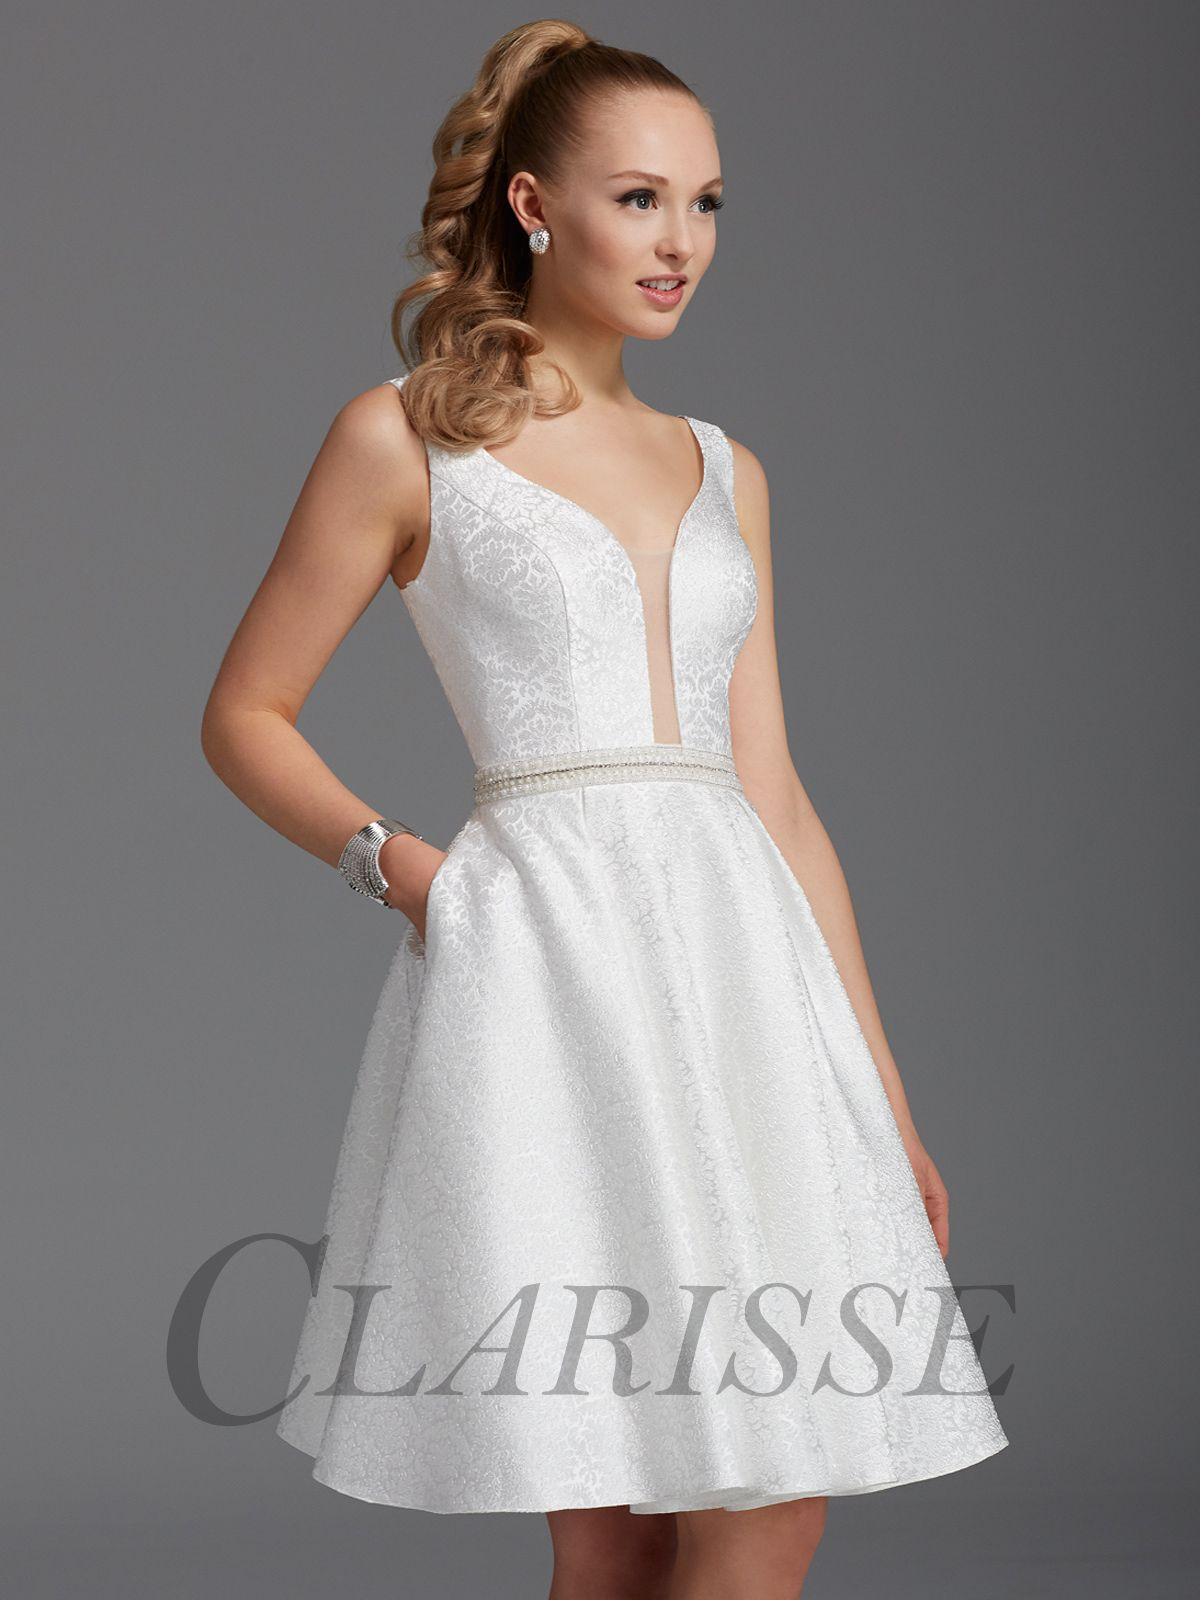 71b991bd39a Clarisse White Damask Homecoming Dress 2910 in 2019